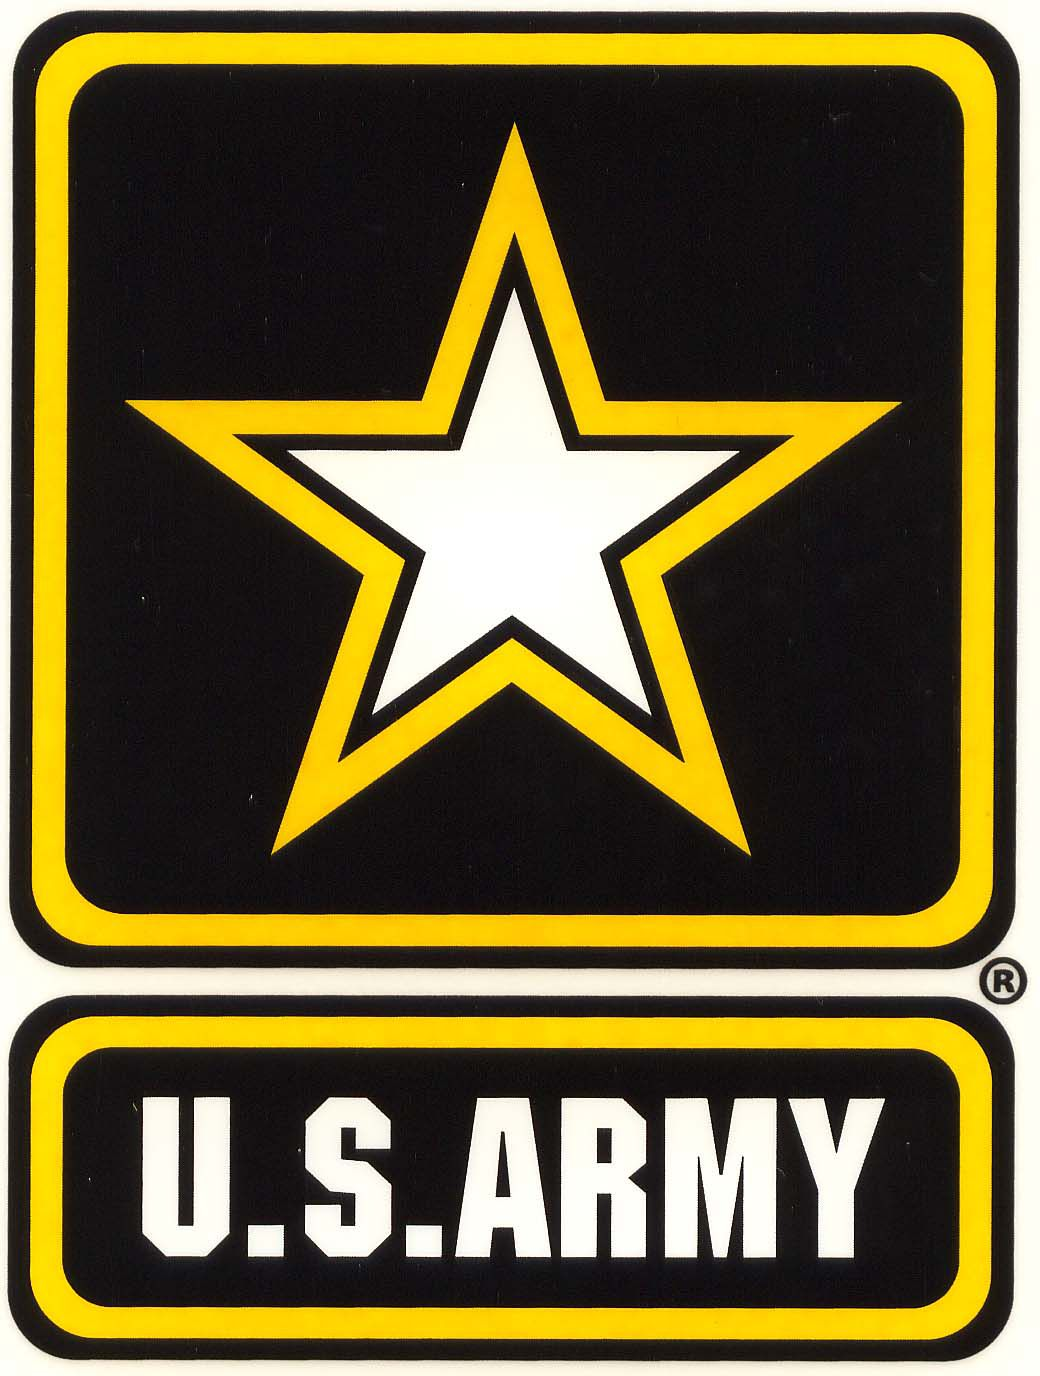 Army National Guard U.S.